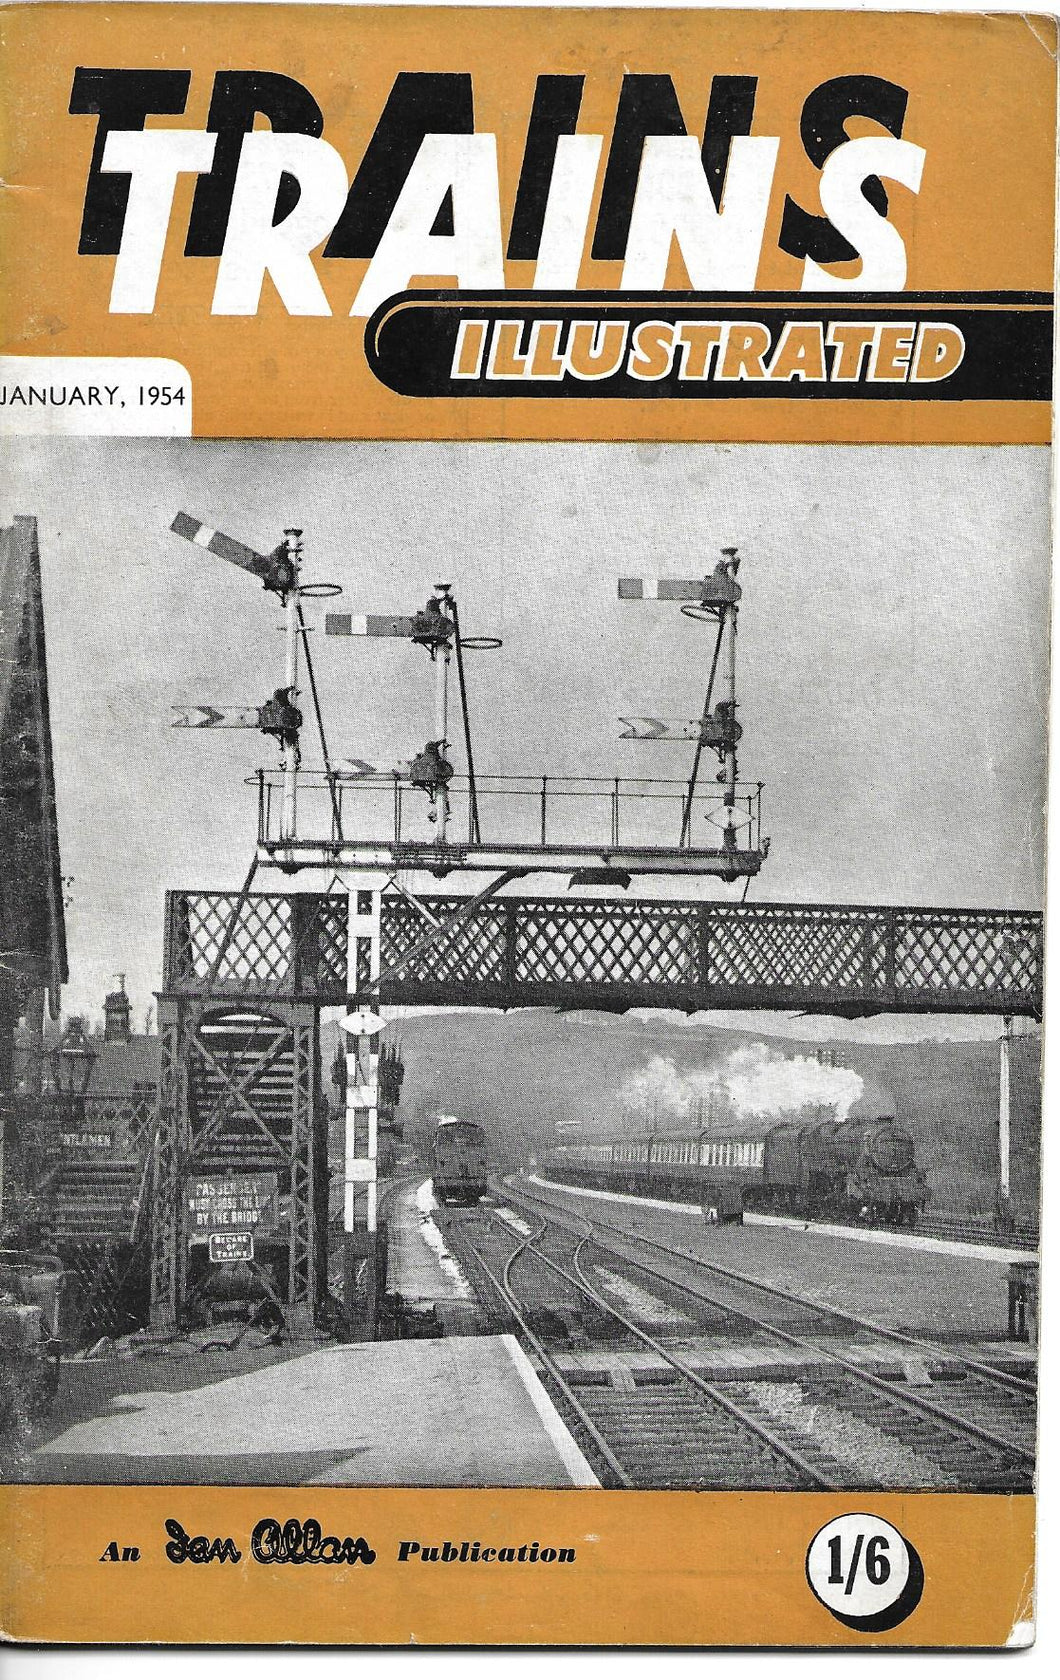 Trains Illustrated, Ian Allan, January  1954, Vol VII No 1.